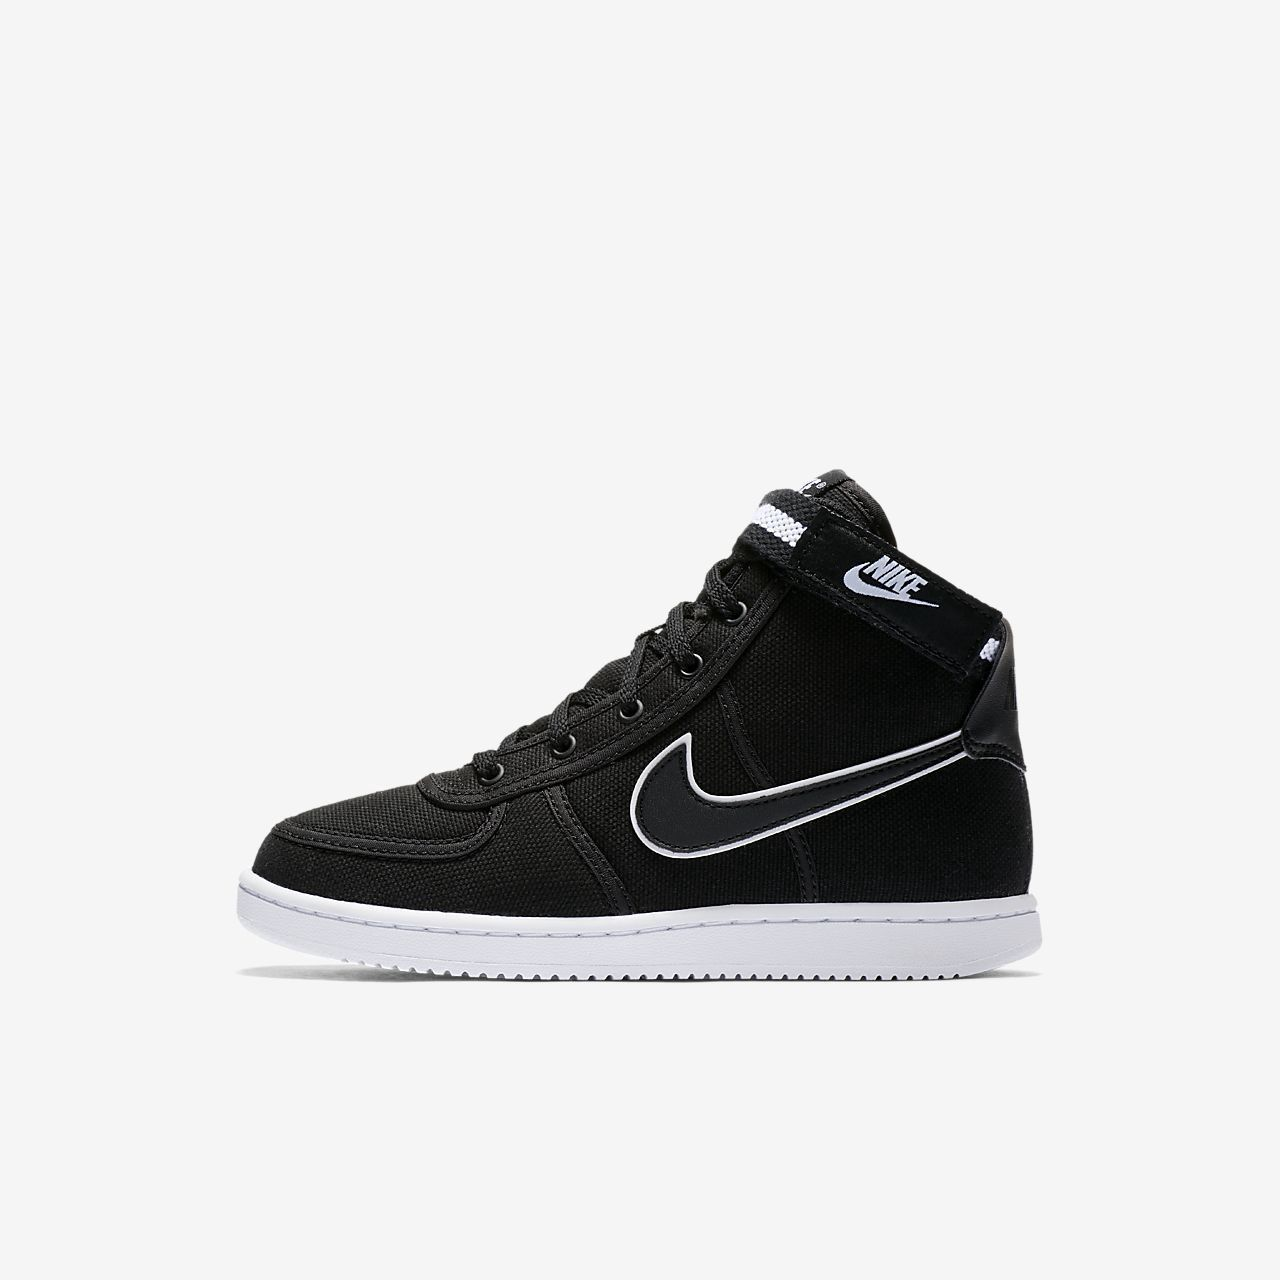 new style db2a1 22157 Nike Vandal High Supreme Little Kids  Shoe - 10.5C